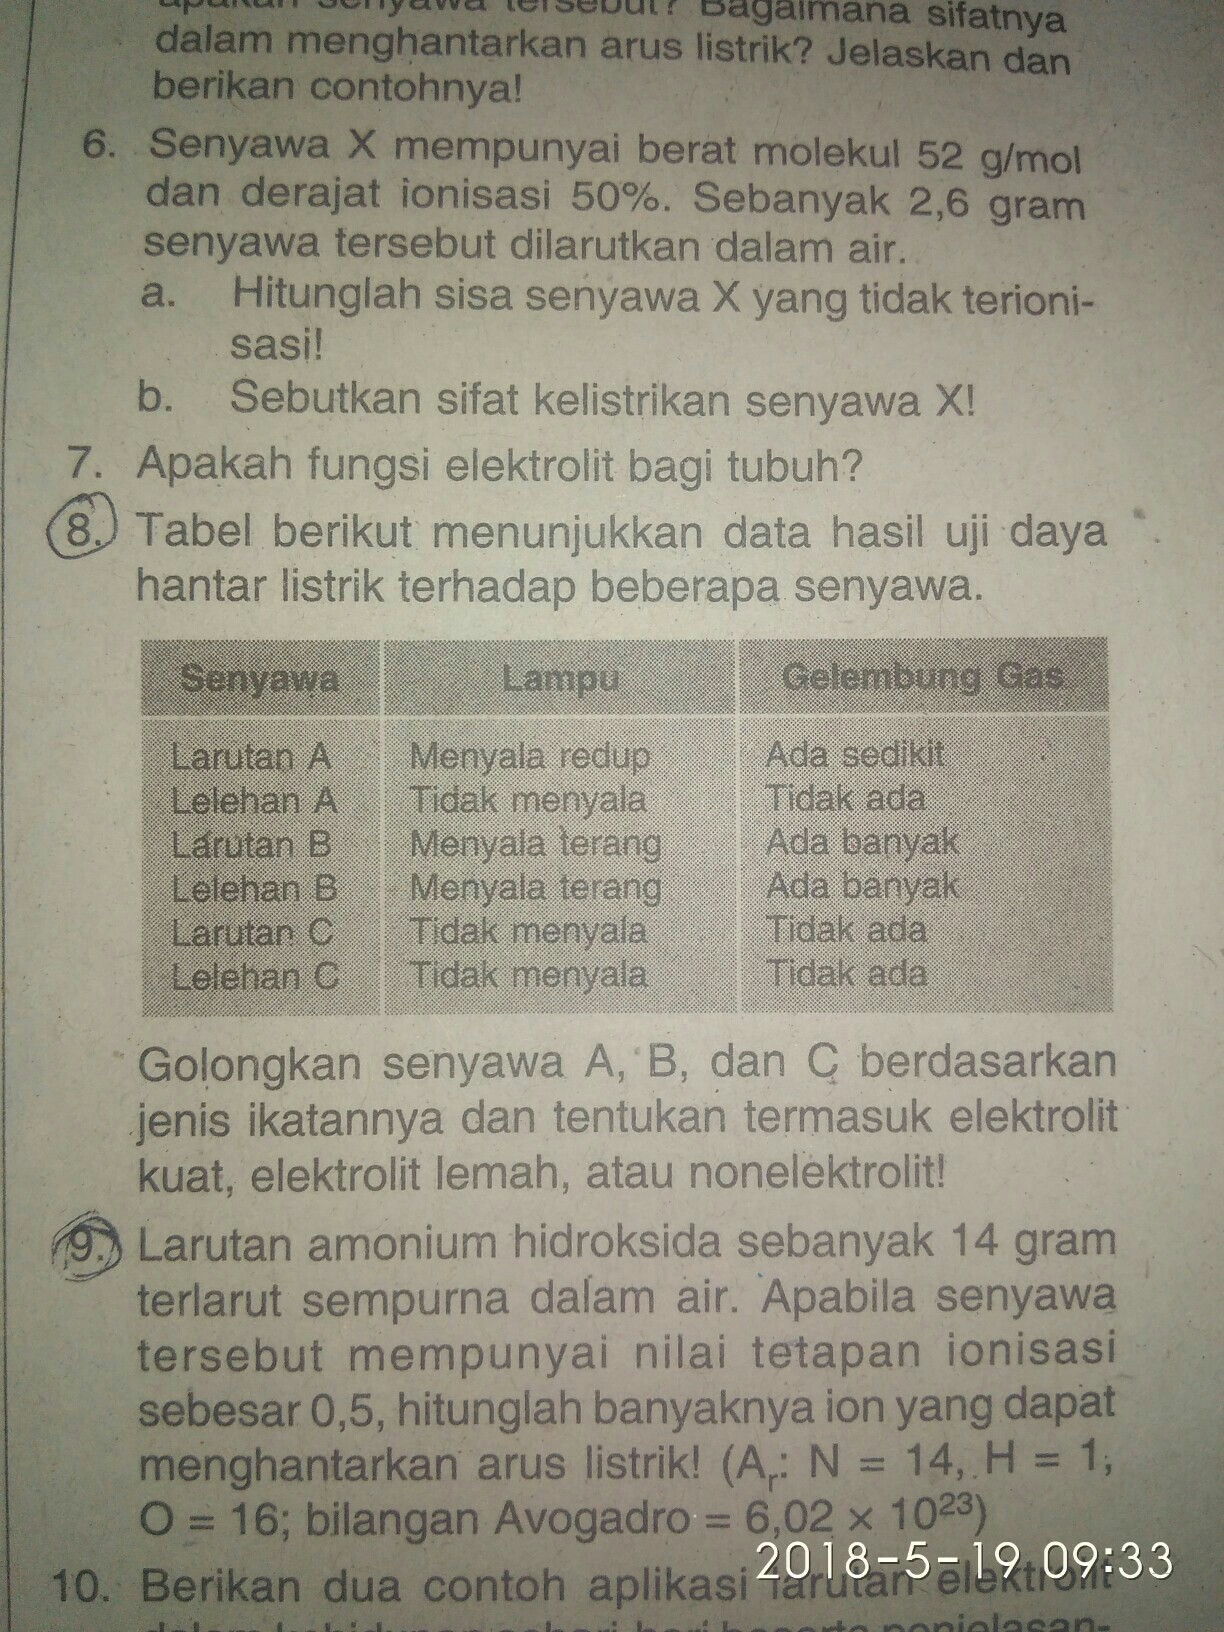 Nomer 8 Penting Tolong Ya Brainly Co Id